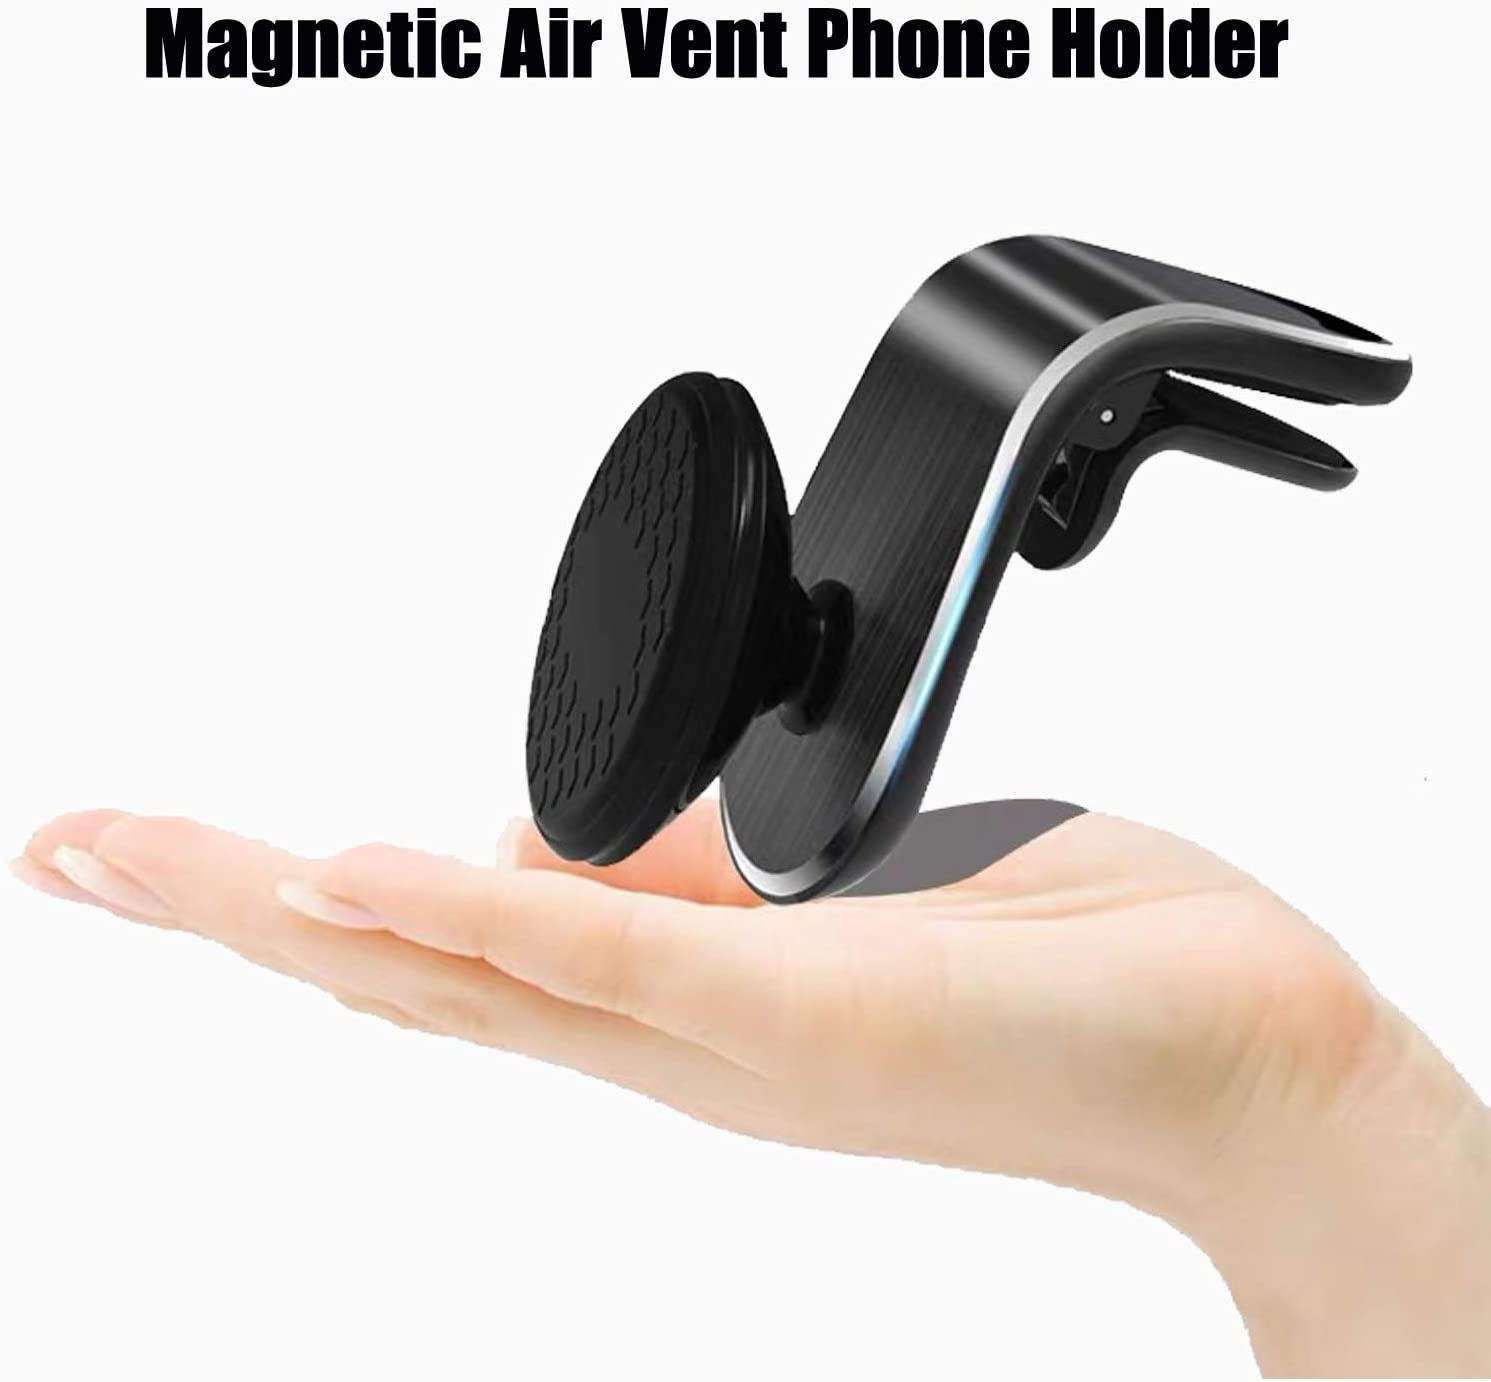 Car Phone Holder Upgraded Magnetic Air Vent Car Mount for iPhones,Samsung Galaxy, Google Pixel, Nexus, OnePlus, Huawei and More Black